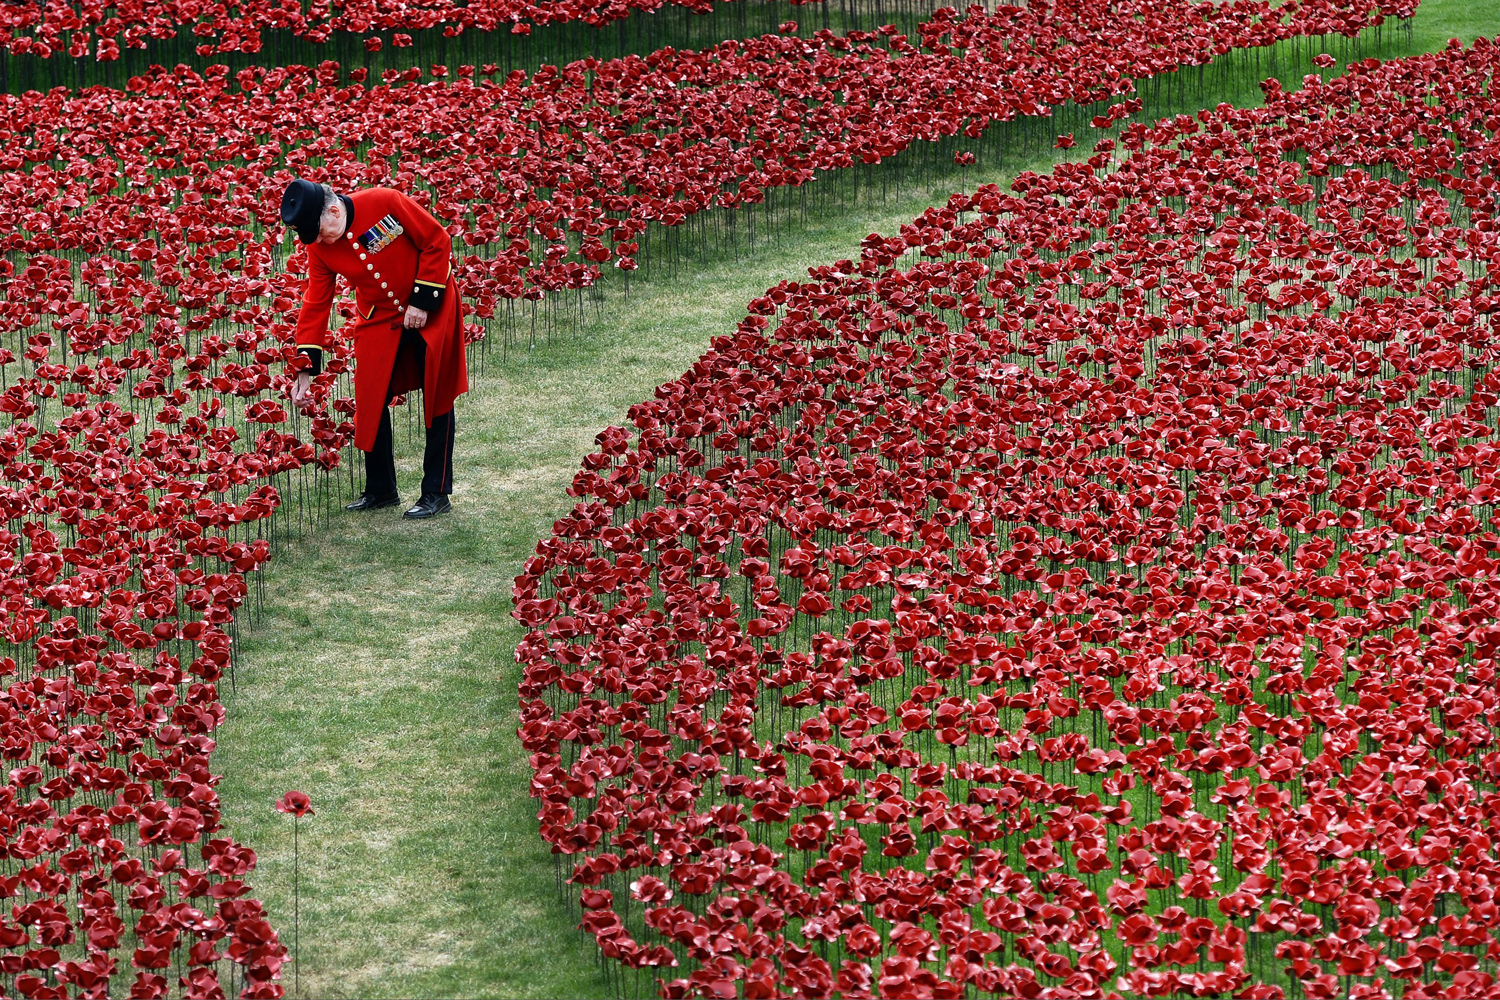 Aug. 1, 2014.  A bemedalled Chelsea Pensioner walks amongst red poppies in the moat at the Tower of London in London, Britain.